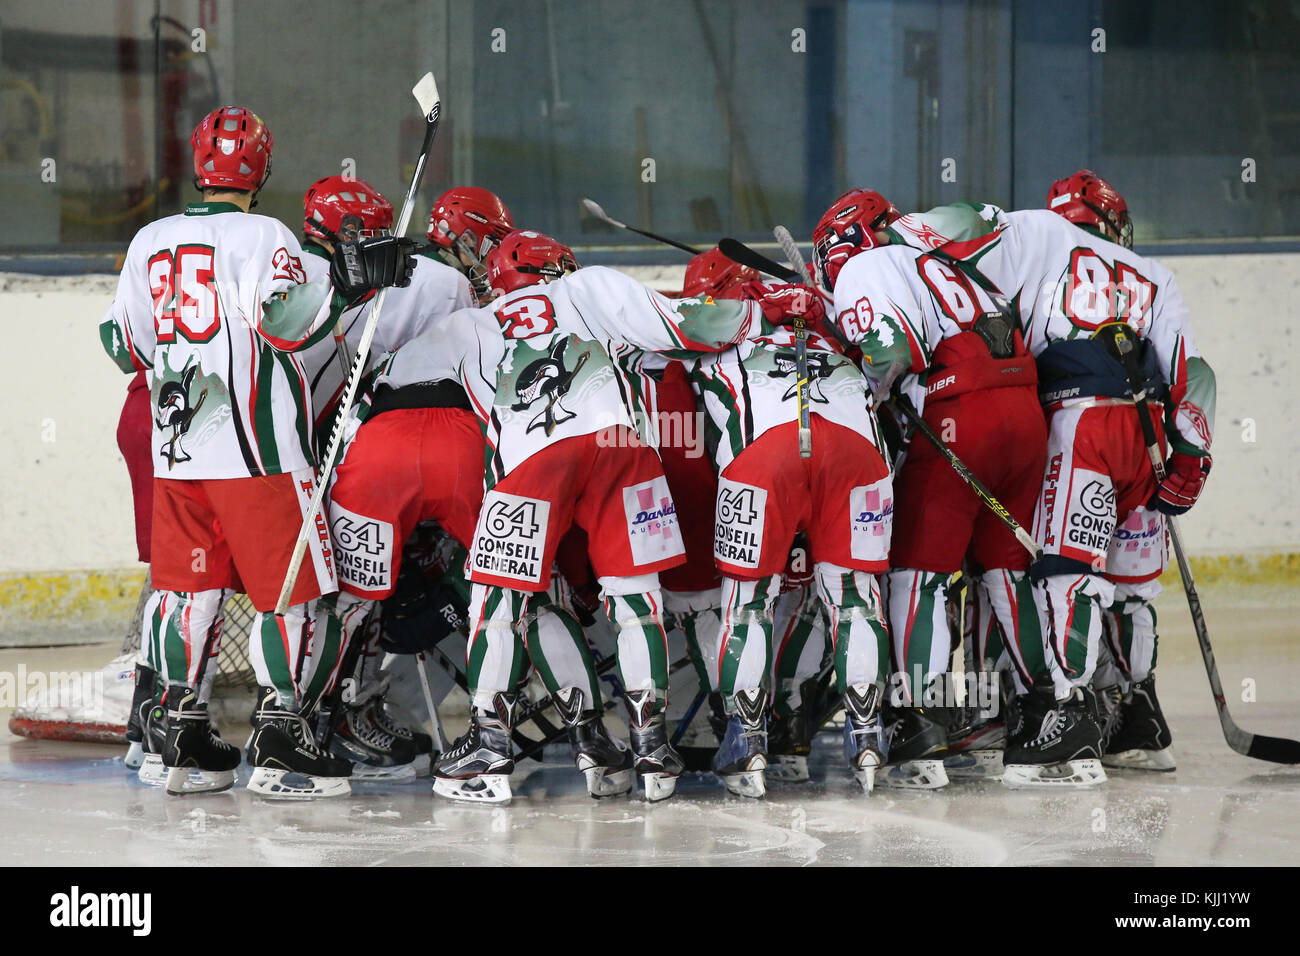 Ice hockey match. France. - Stock Image